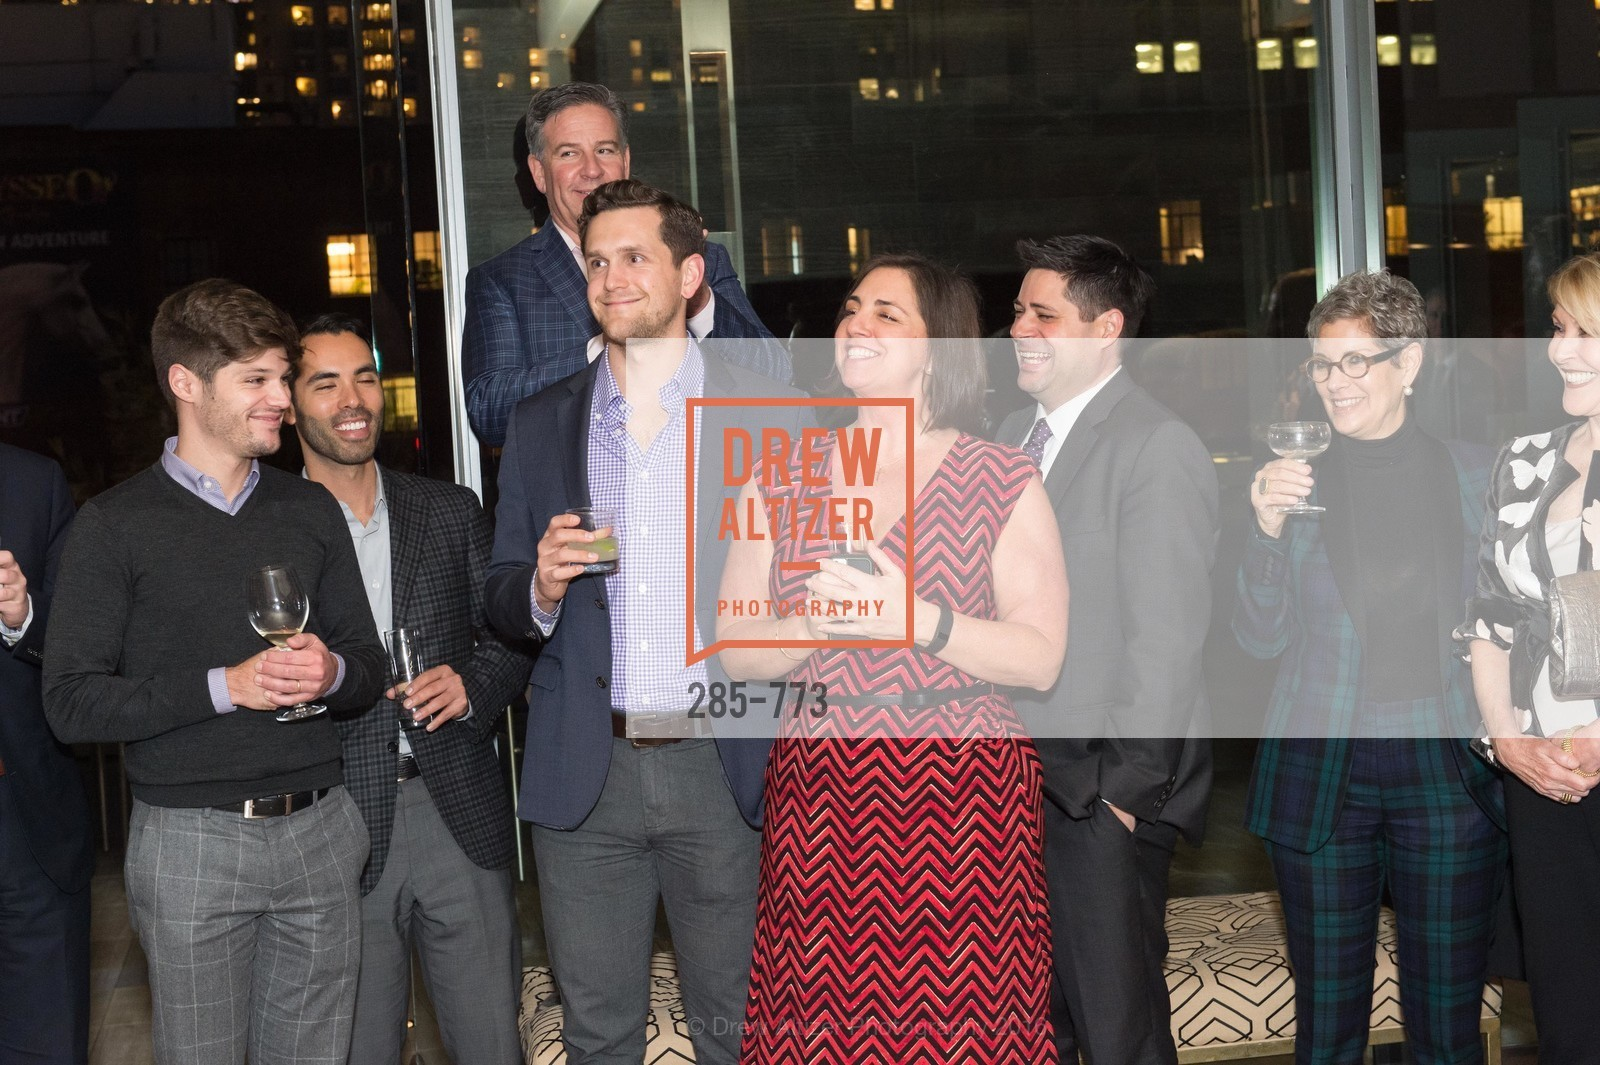 Jonathan Bentley, Gregg Lynn, Neill Bassi, Rachelle Martini, James Testa, Mary Lou Castellanos, Sotheby's International Realty's Celebrates the New Year, The Battery, Penthouse. 717 Battery St, January 27th, 2016,Drew Altizer, Drew Altizer Photography, full-service agency, private events, San Francisco photographer, photographer california